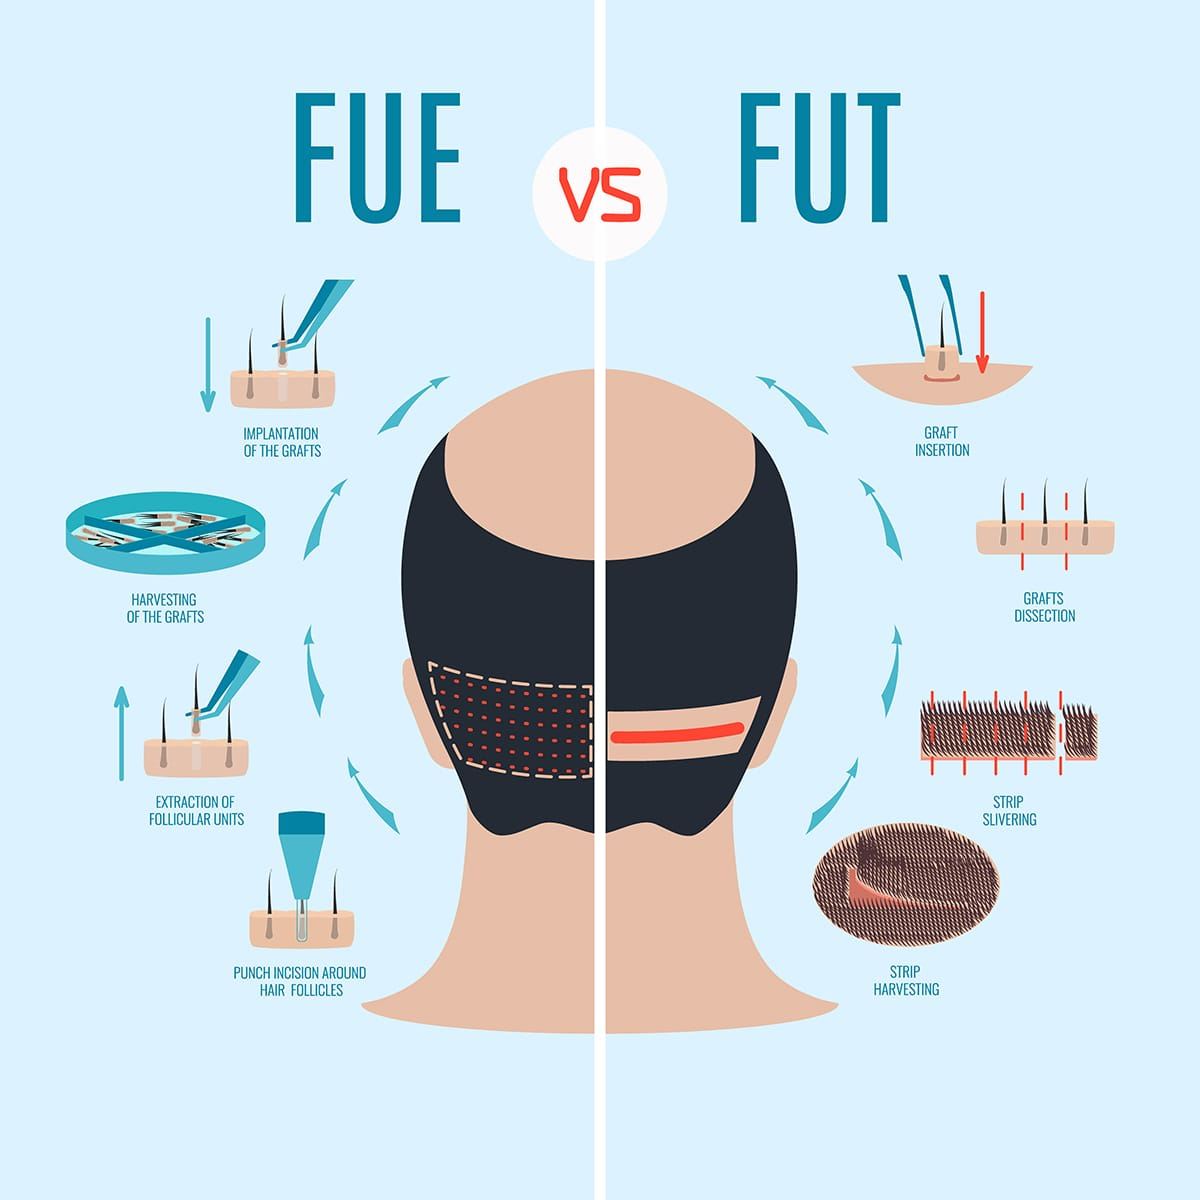 fue versus fut treatment for balding